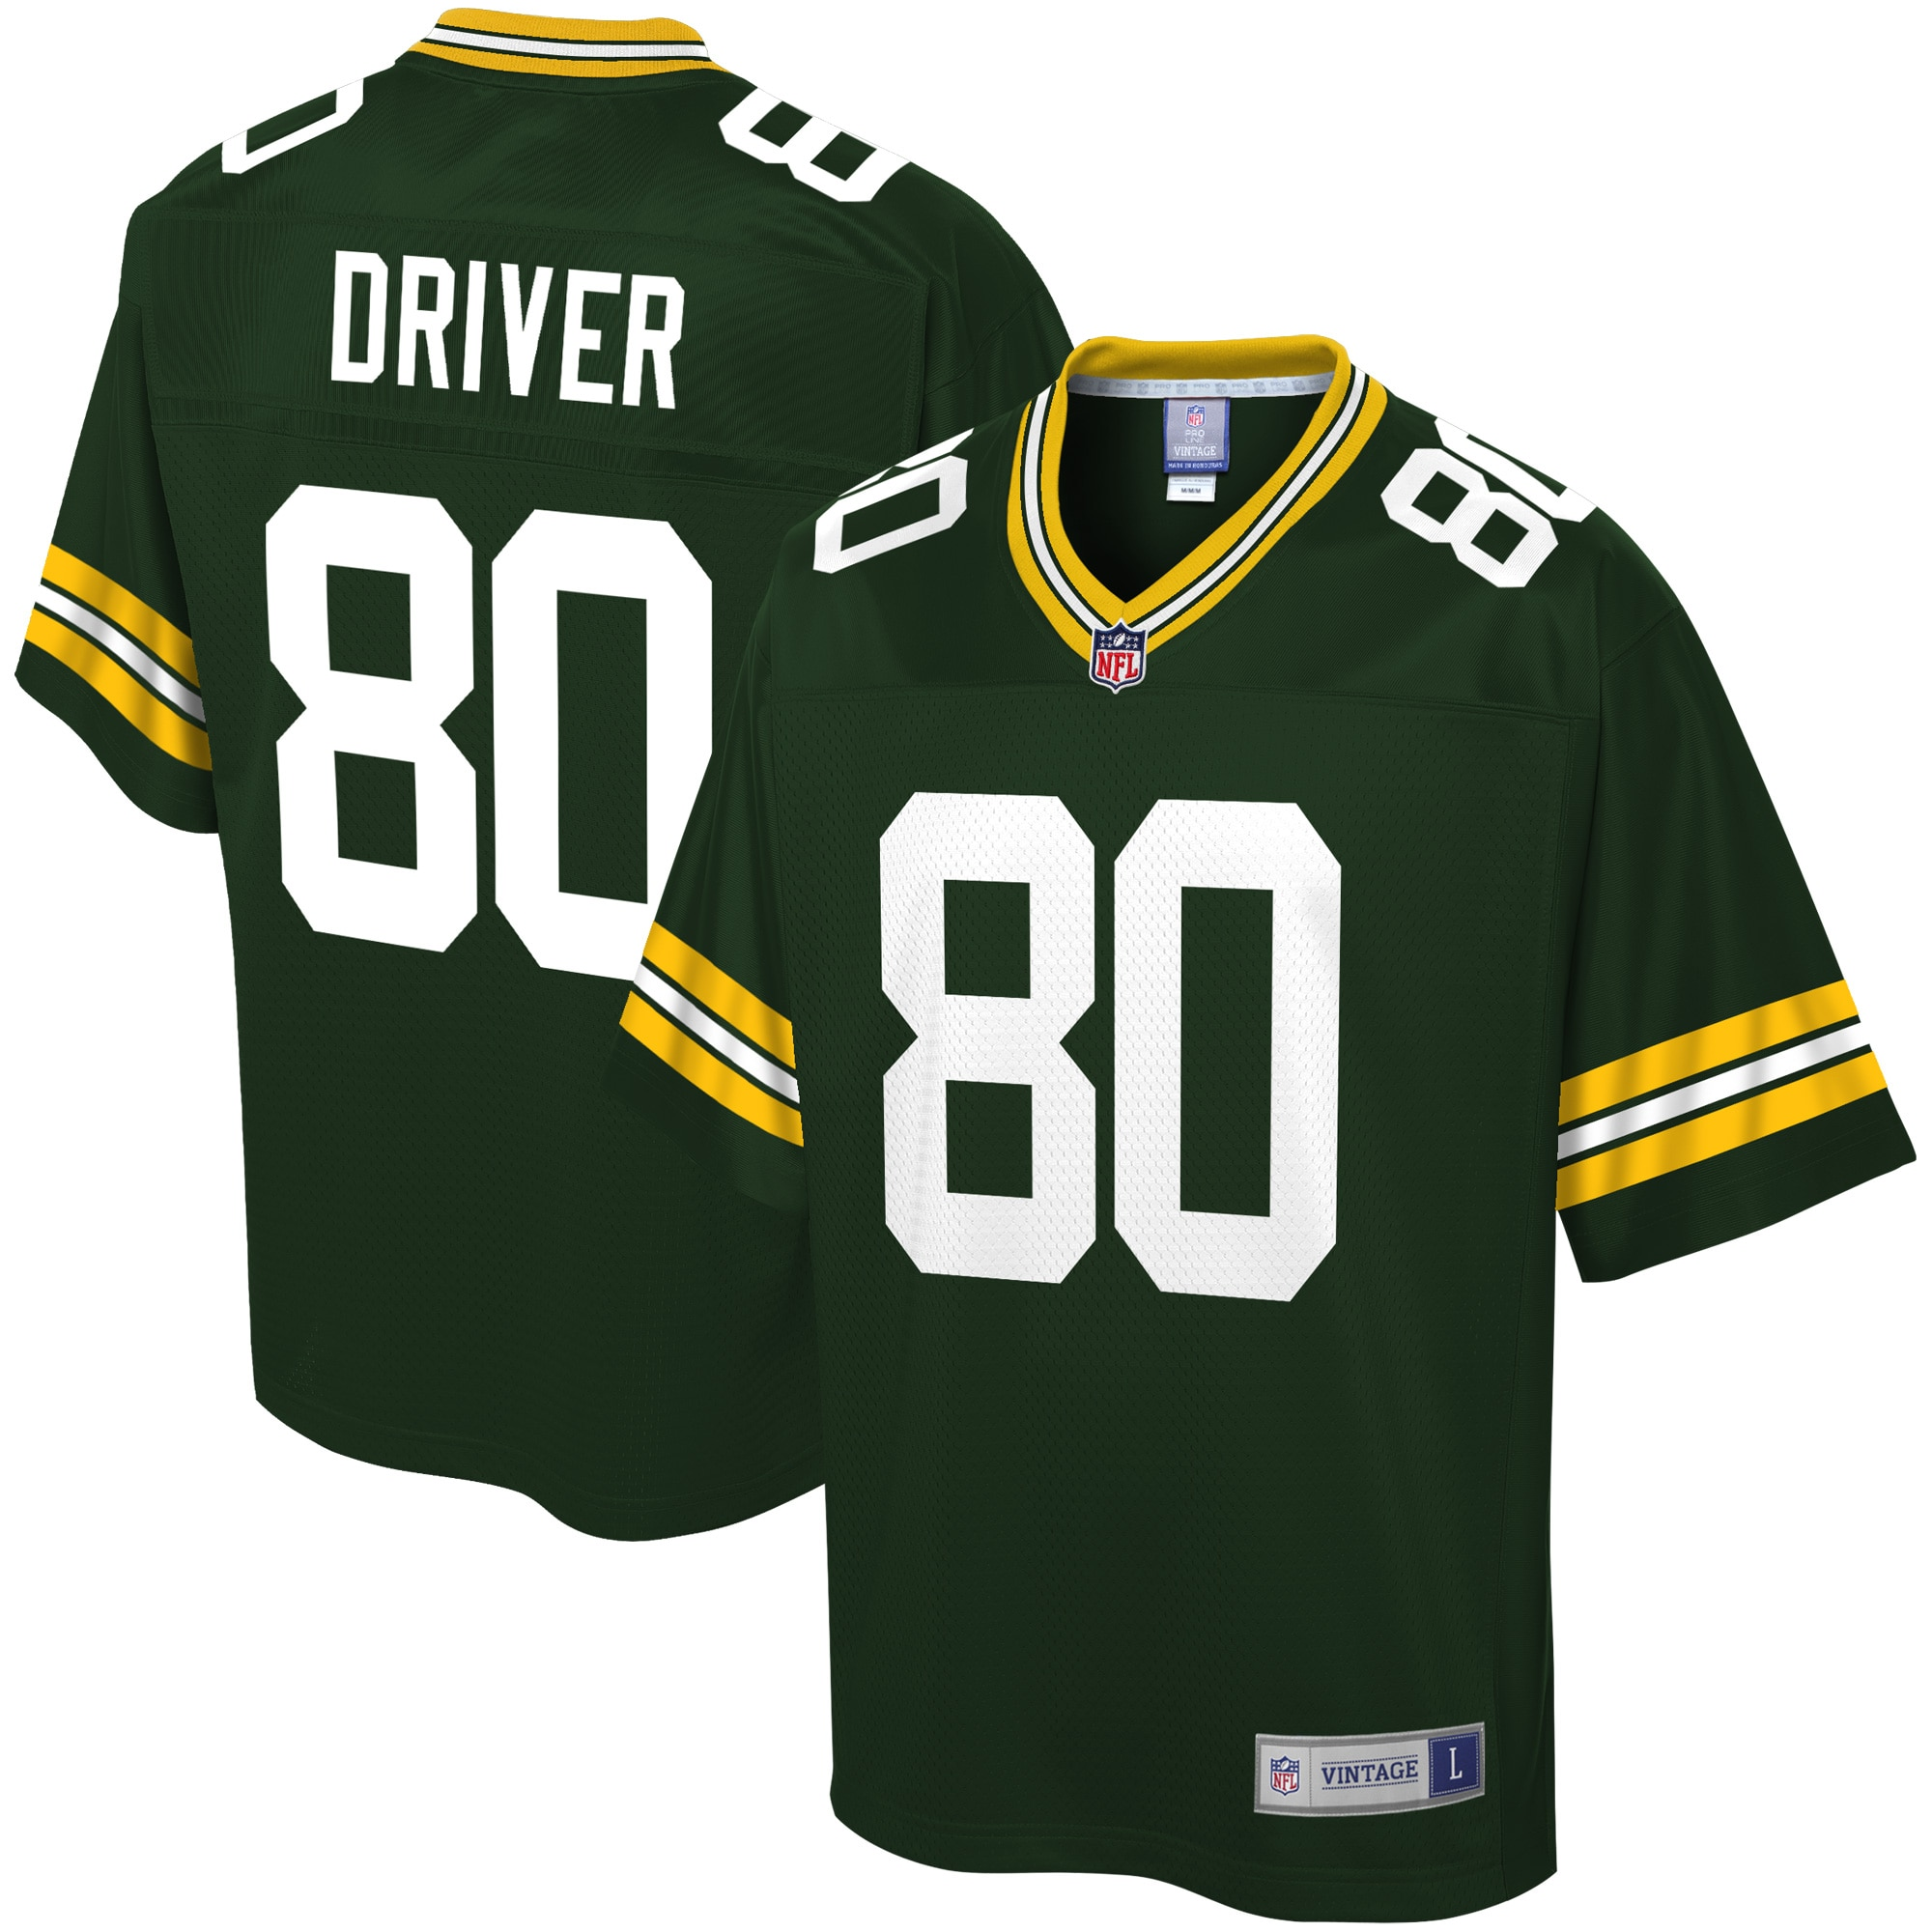 Donald Driver Green Bay Packers NFL Pro Line Retired Player Jersey - Green